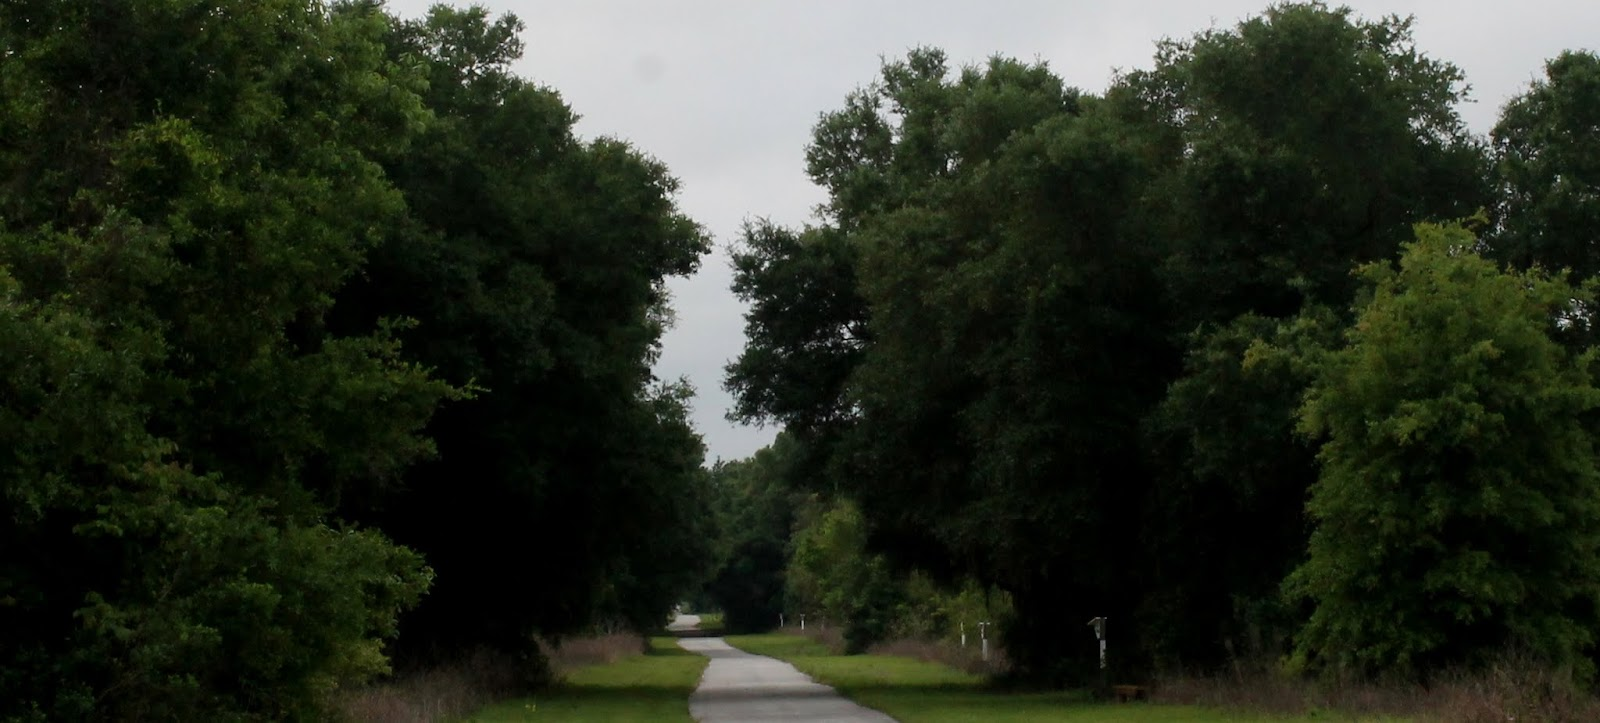 El Withlacoochee State Trail